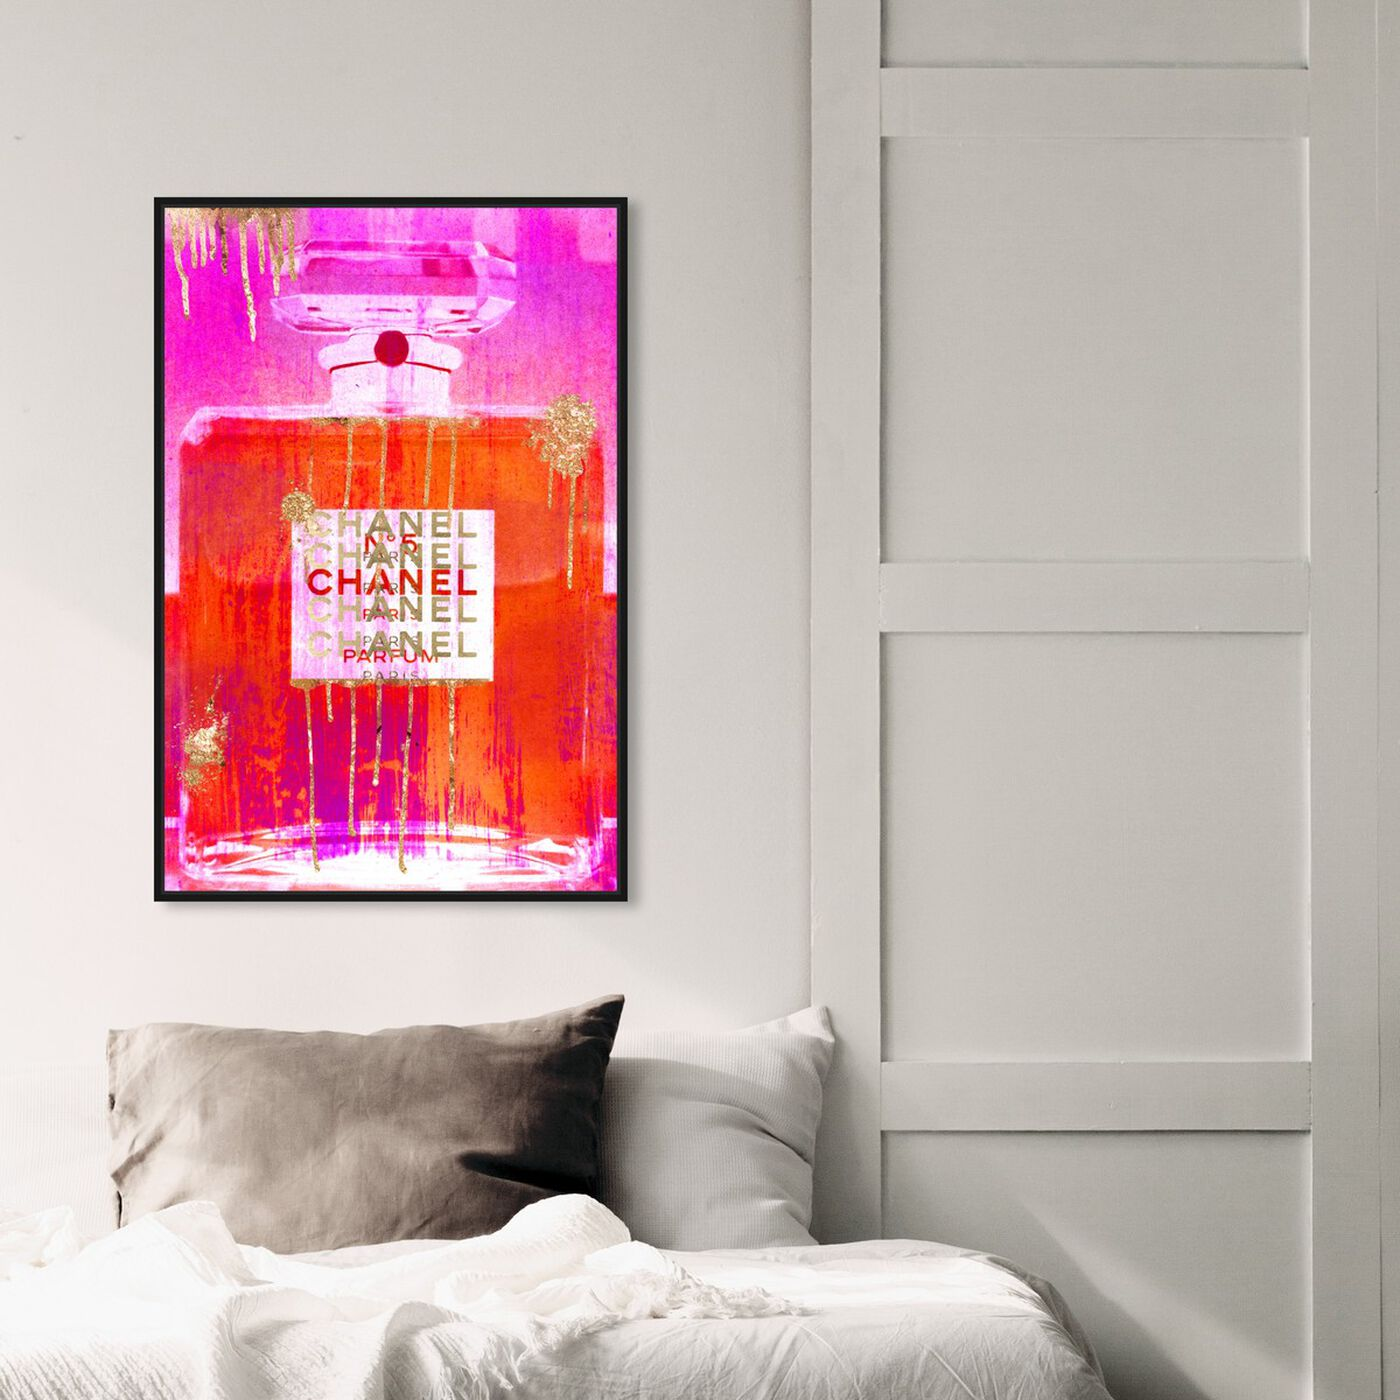 Hanging view of Enchanting Scent featuring fashion and glam and perfumes art.